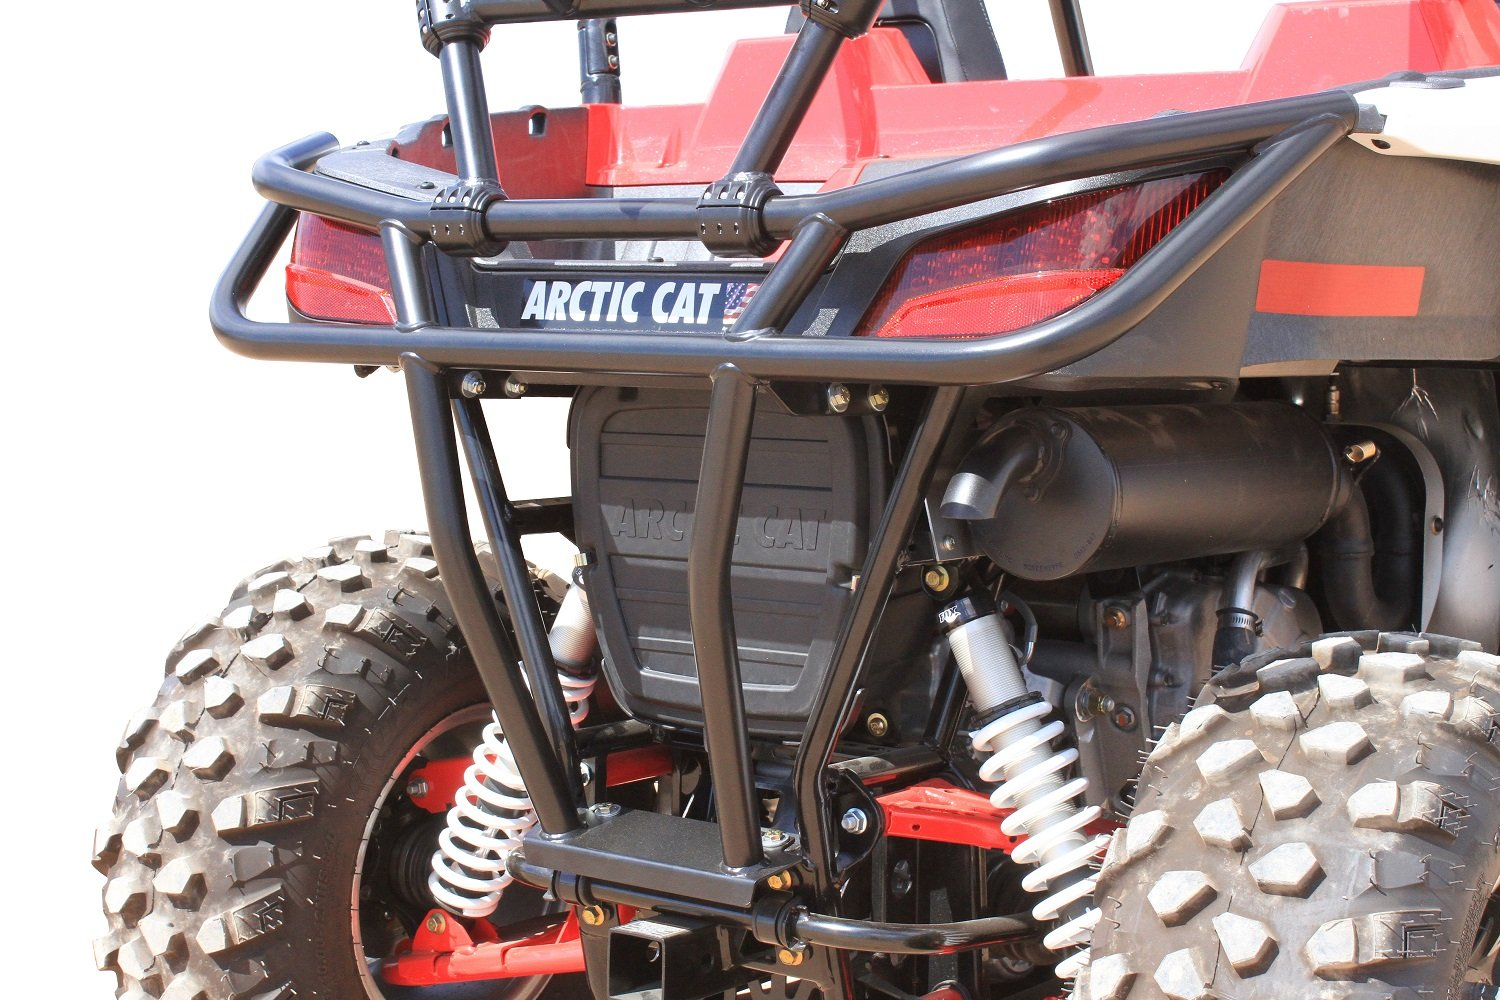 Dragonfire Racing RockSolid Black Rear Bumper Arctic Cat Wildcat Trail/Sport by Dragonfire Racing